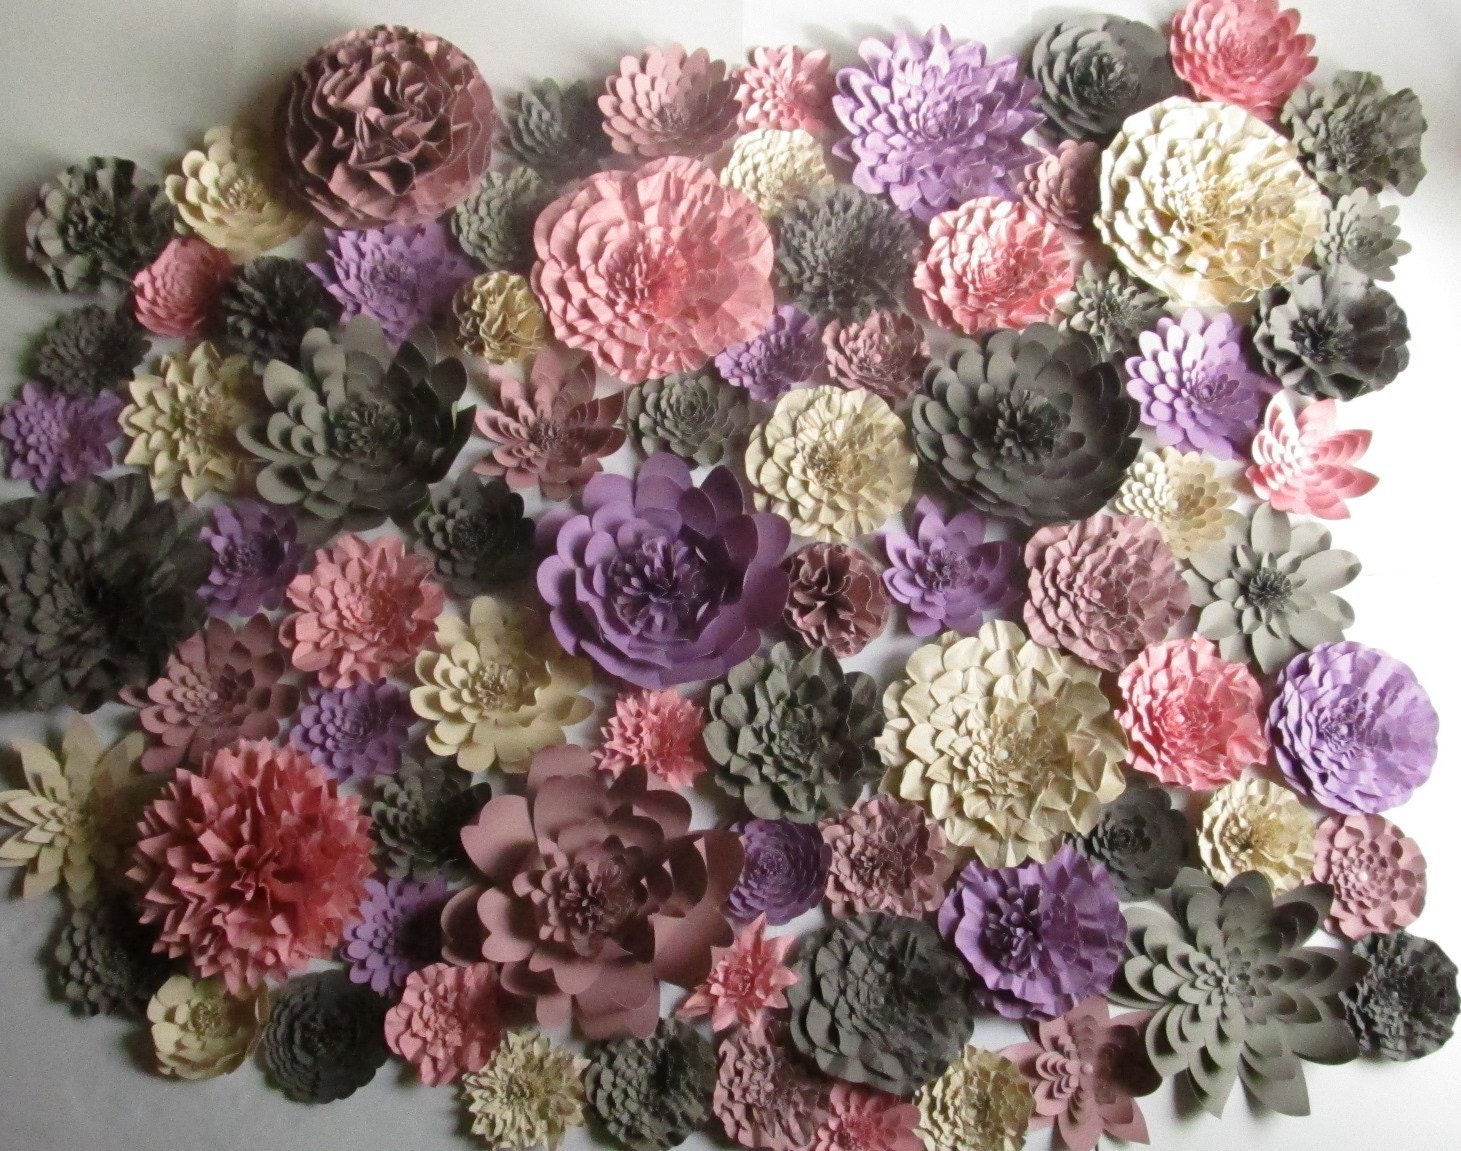 Cheap paper flowers for sale cheap paper flowers for sale izmirmasajfo